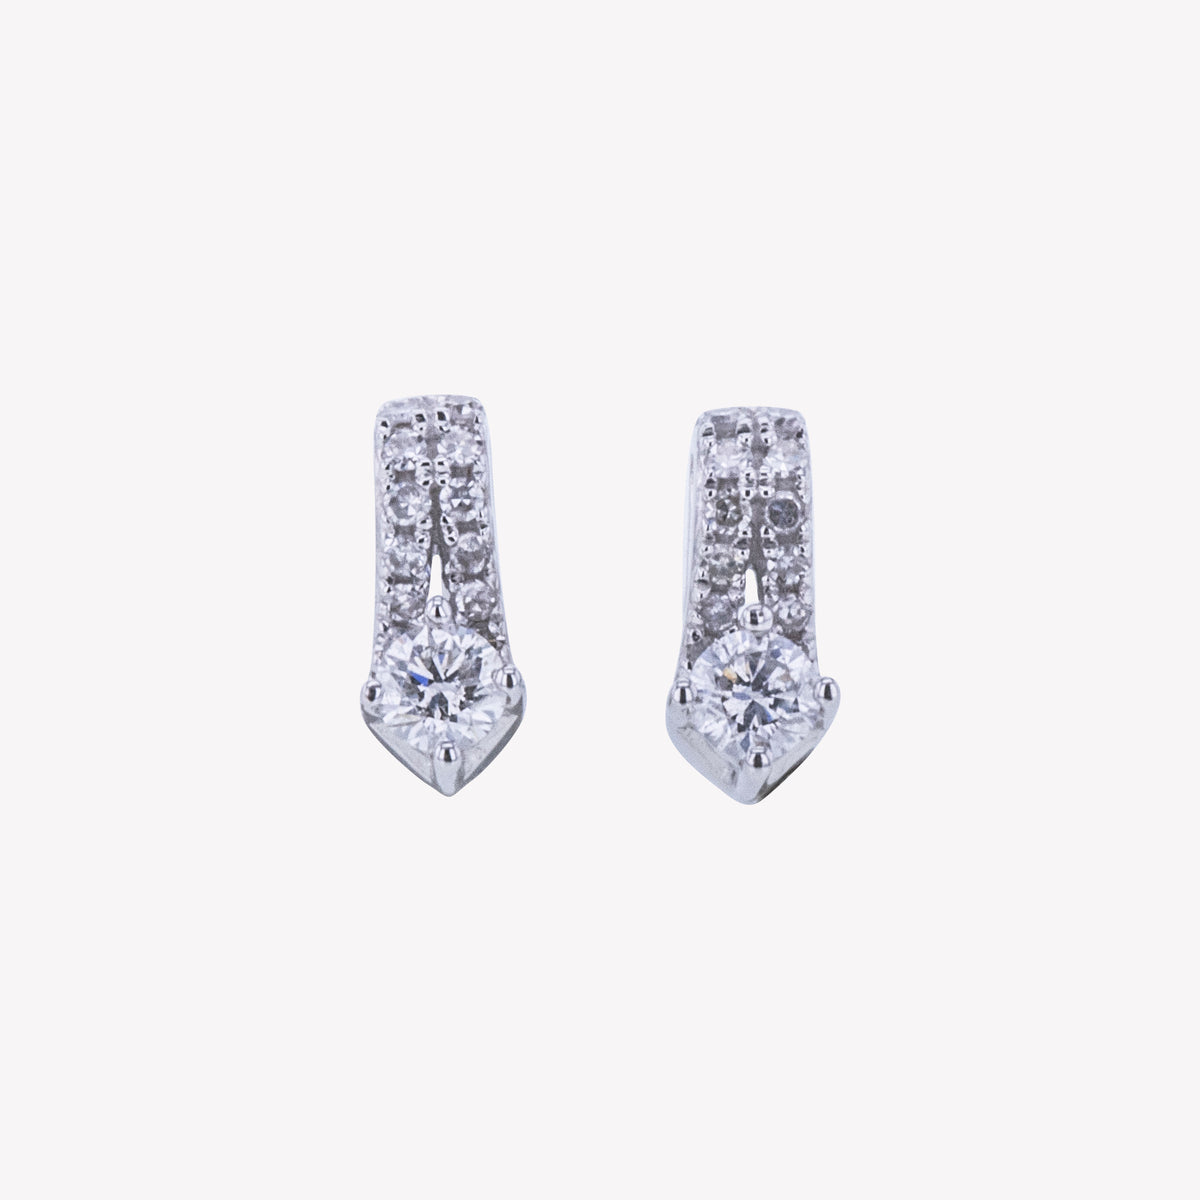 18K W/G Diamond Earring